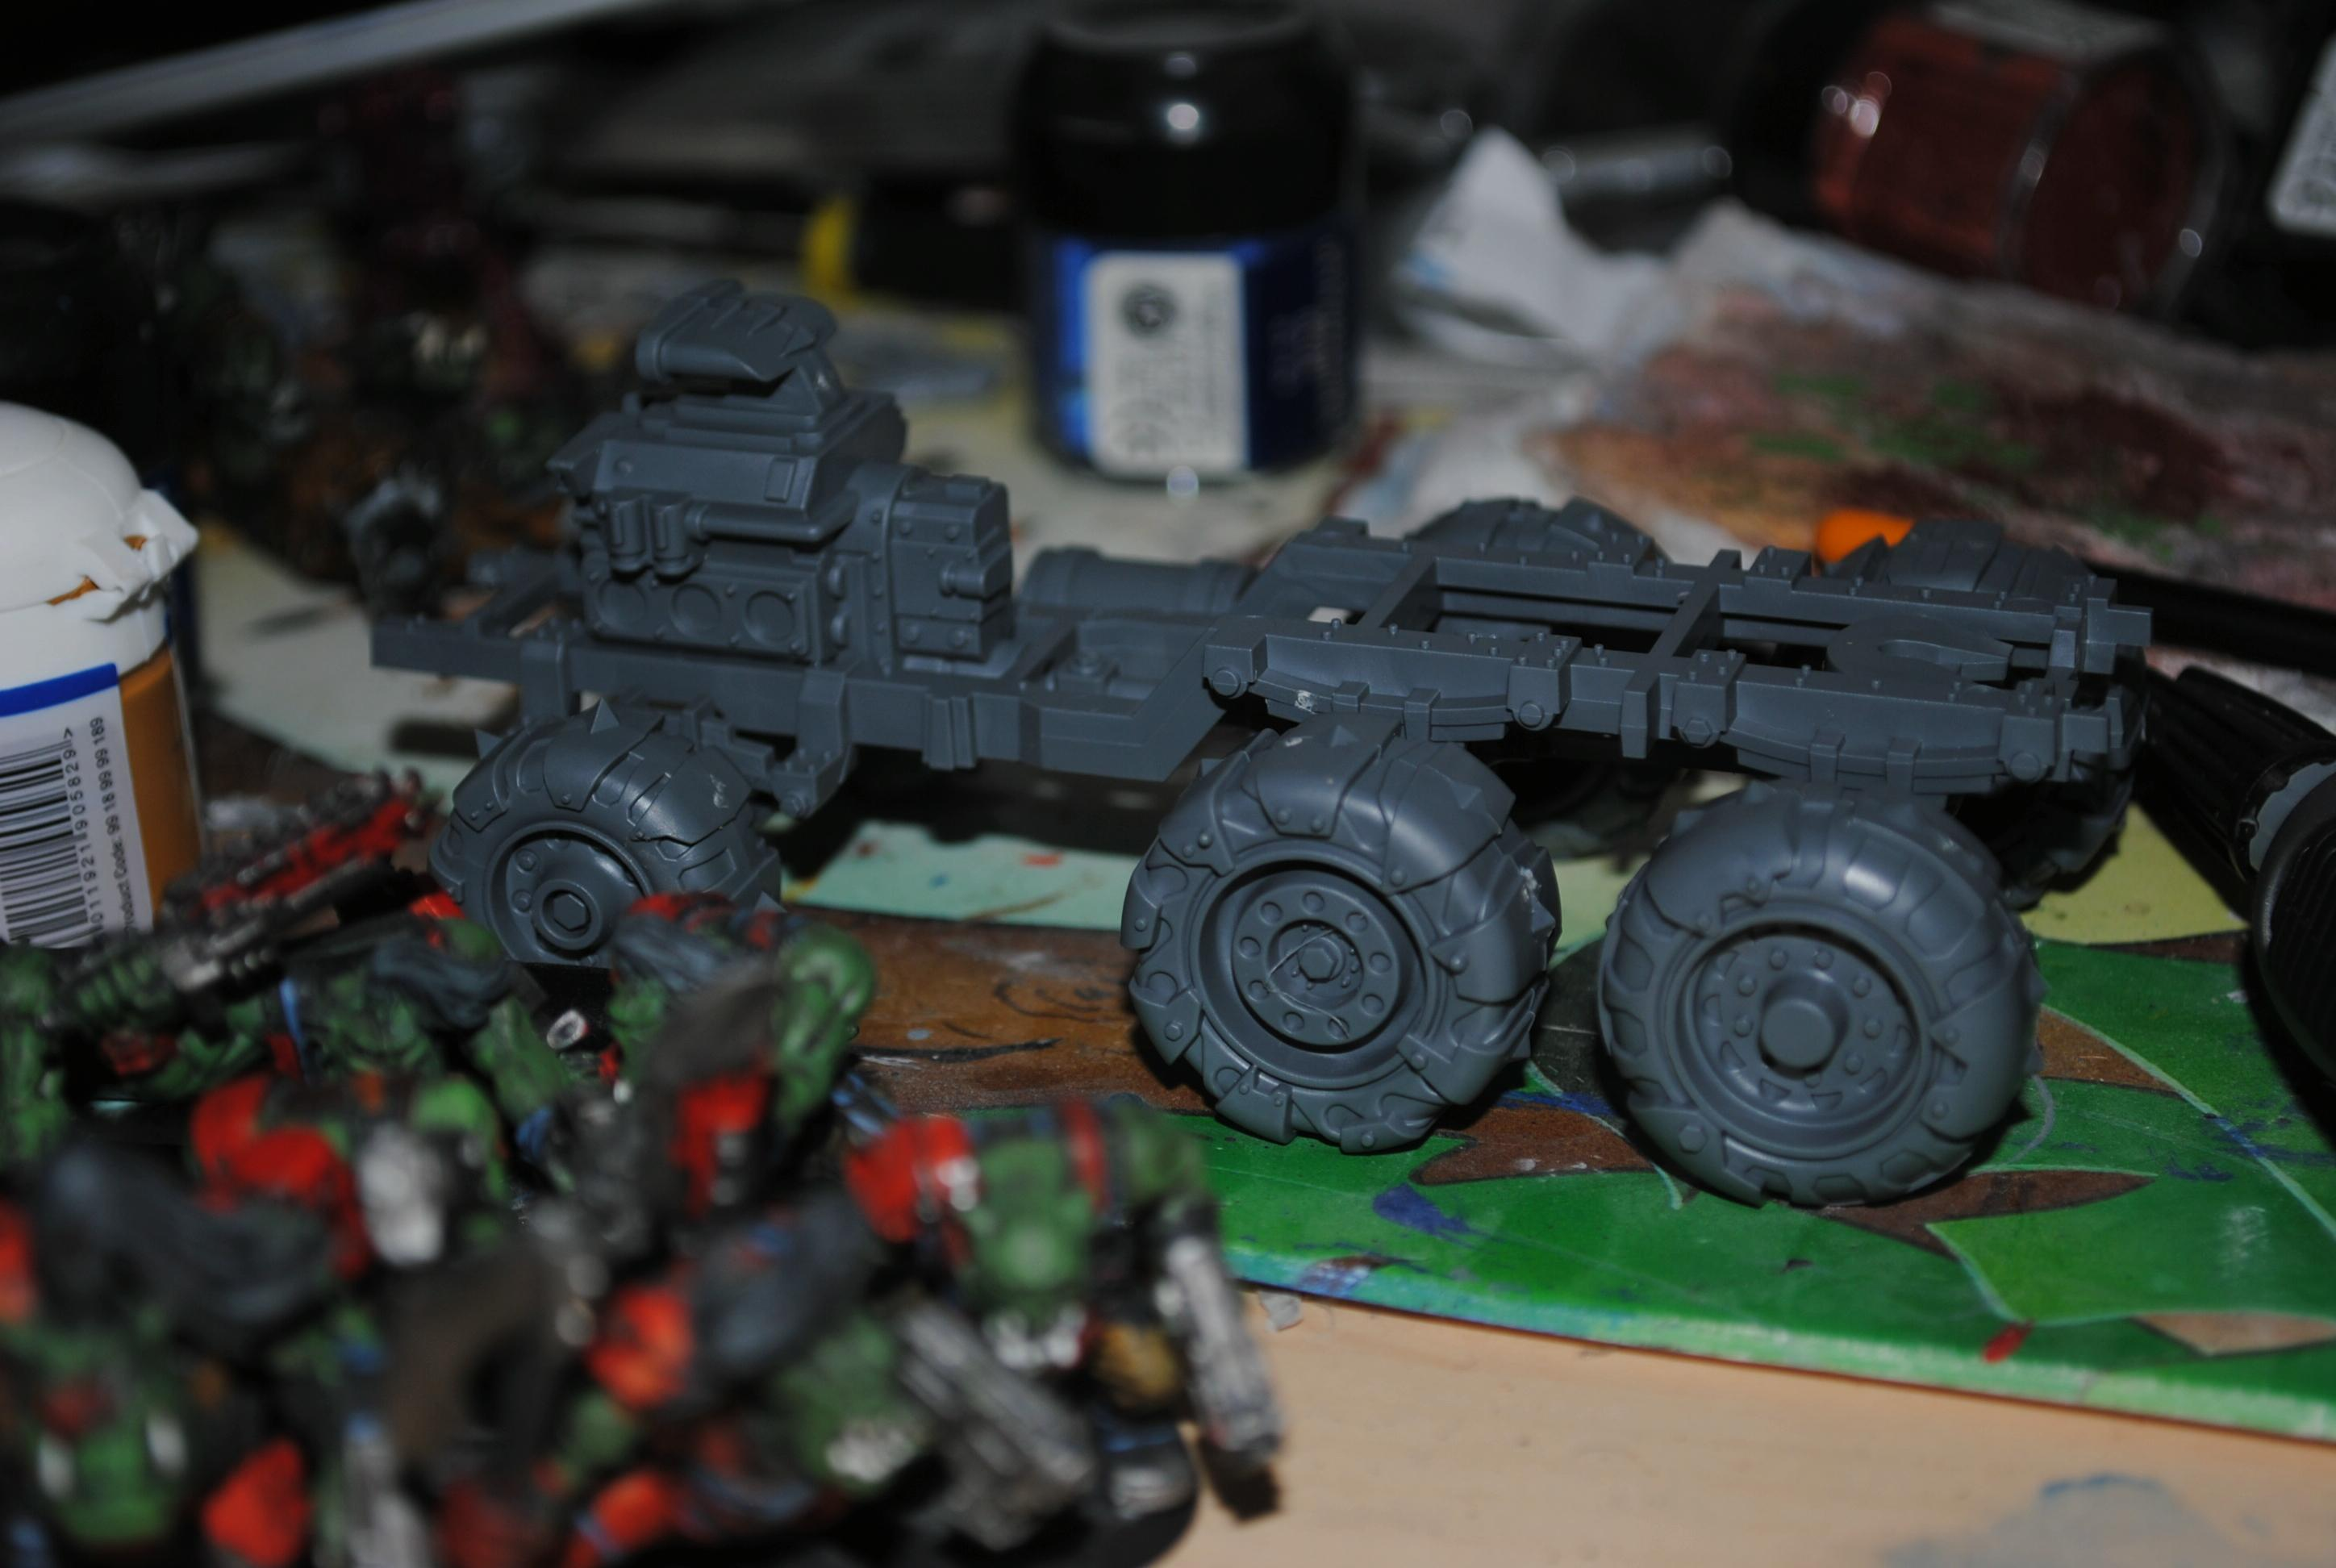 Trukk on my desk, orks in front and whatever else you care to spot